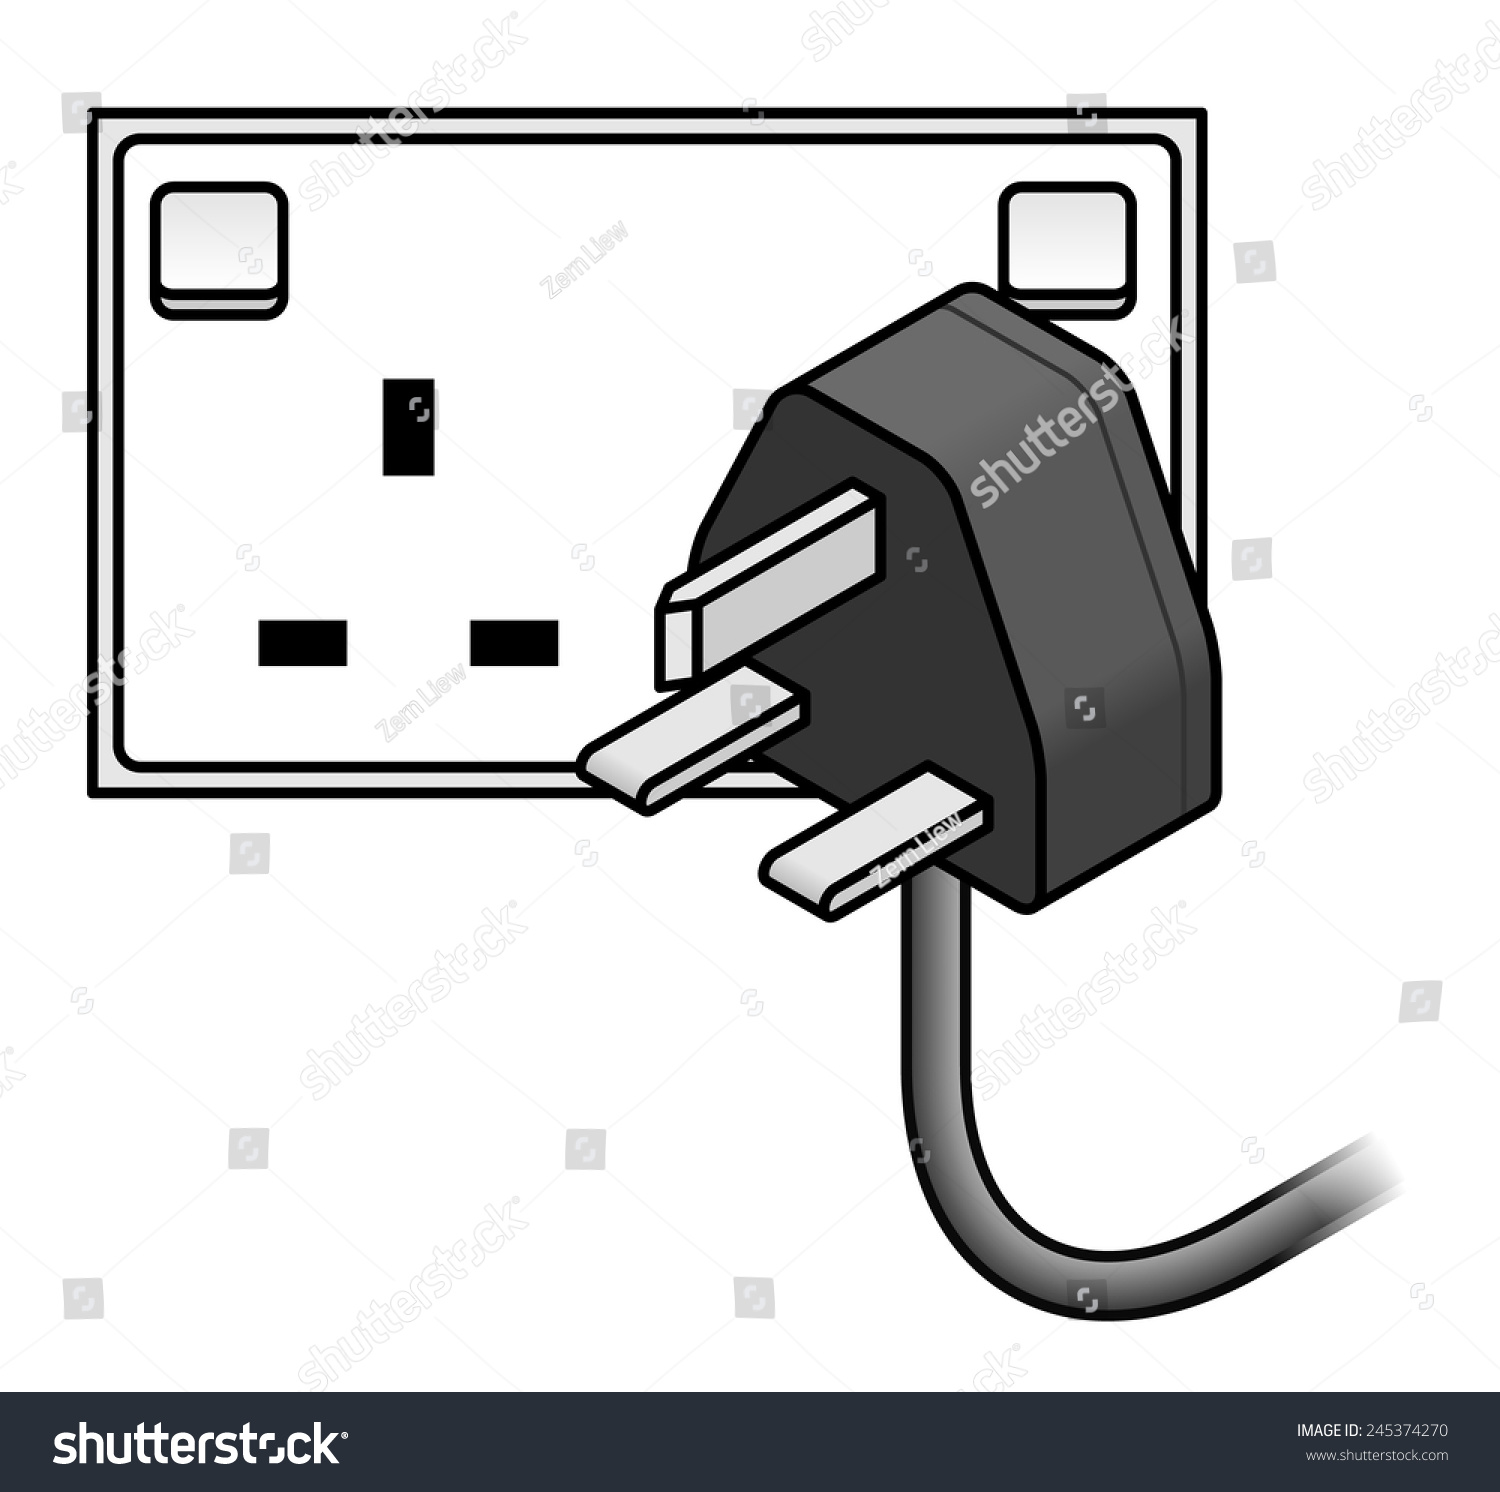 International AC Power Plug Wall Socket Stock Vector (Royalty Free